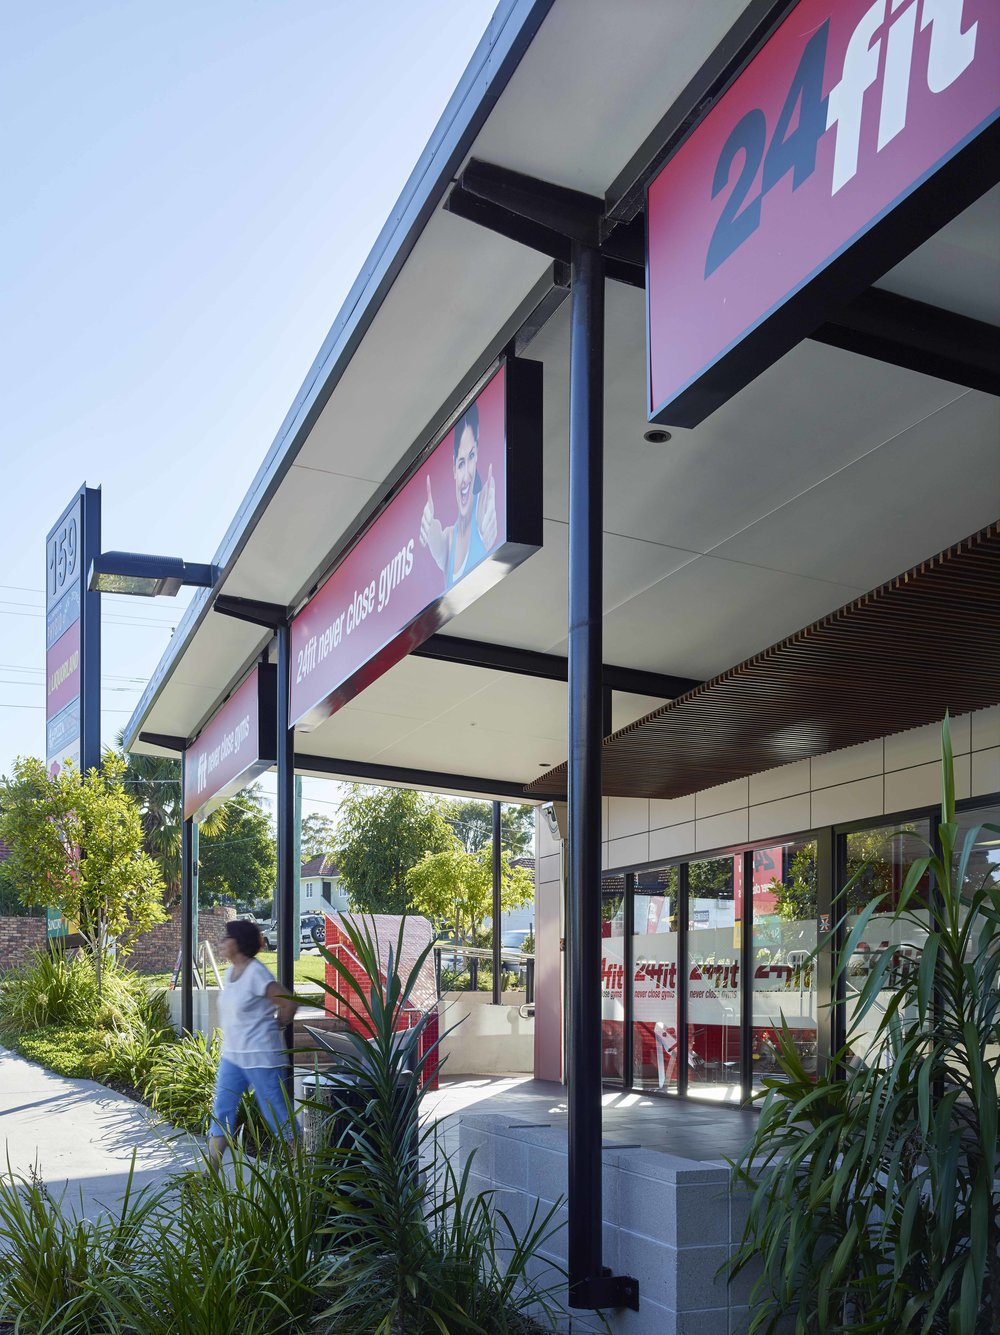 Guymer-bailey-architects-Hamilton-Road-Commercial-06.jpg